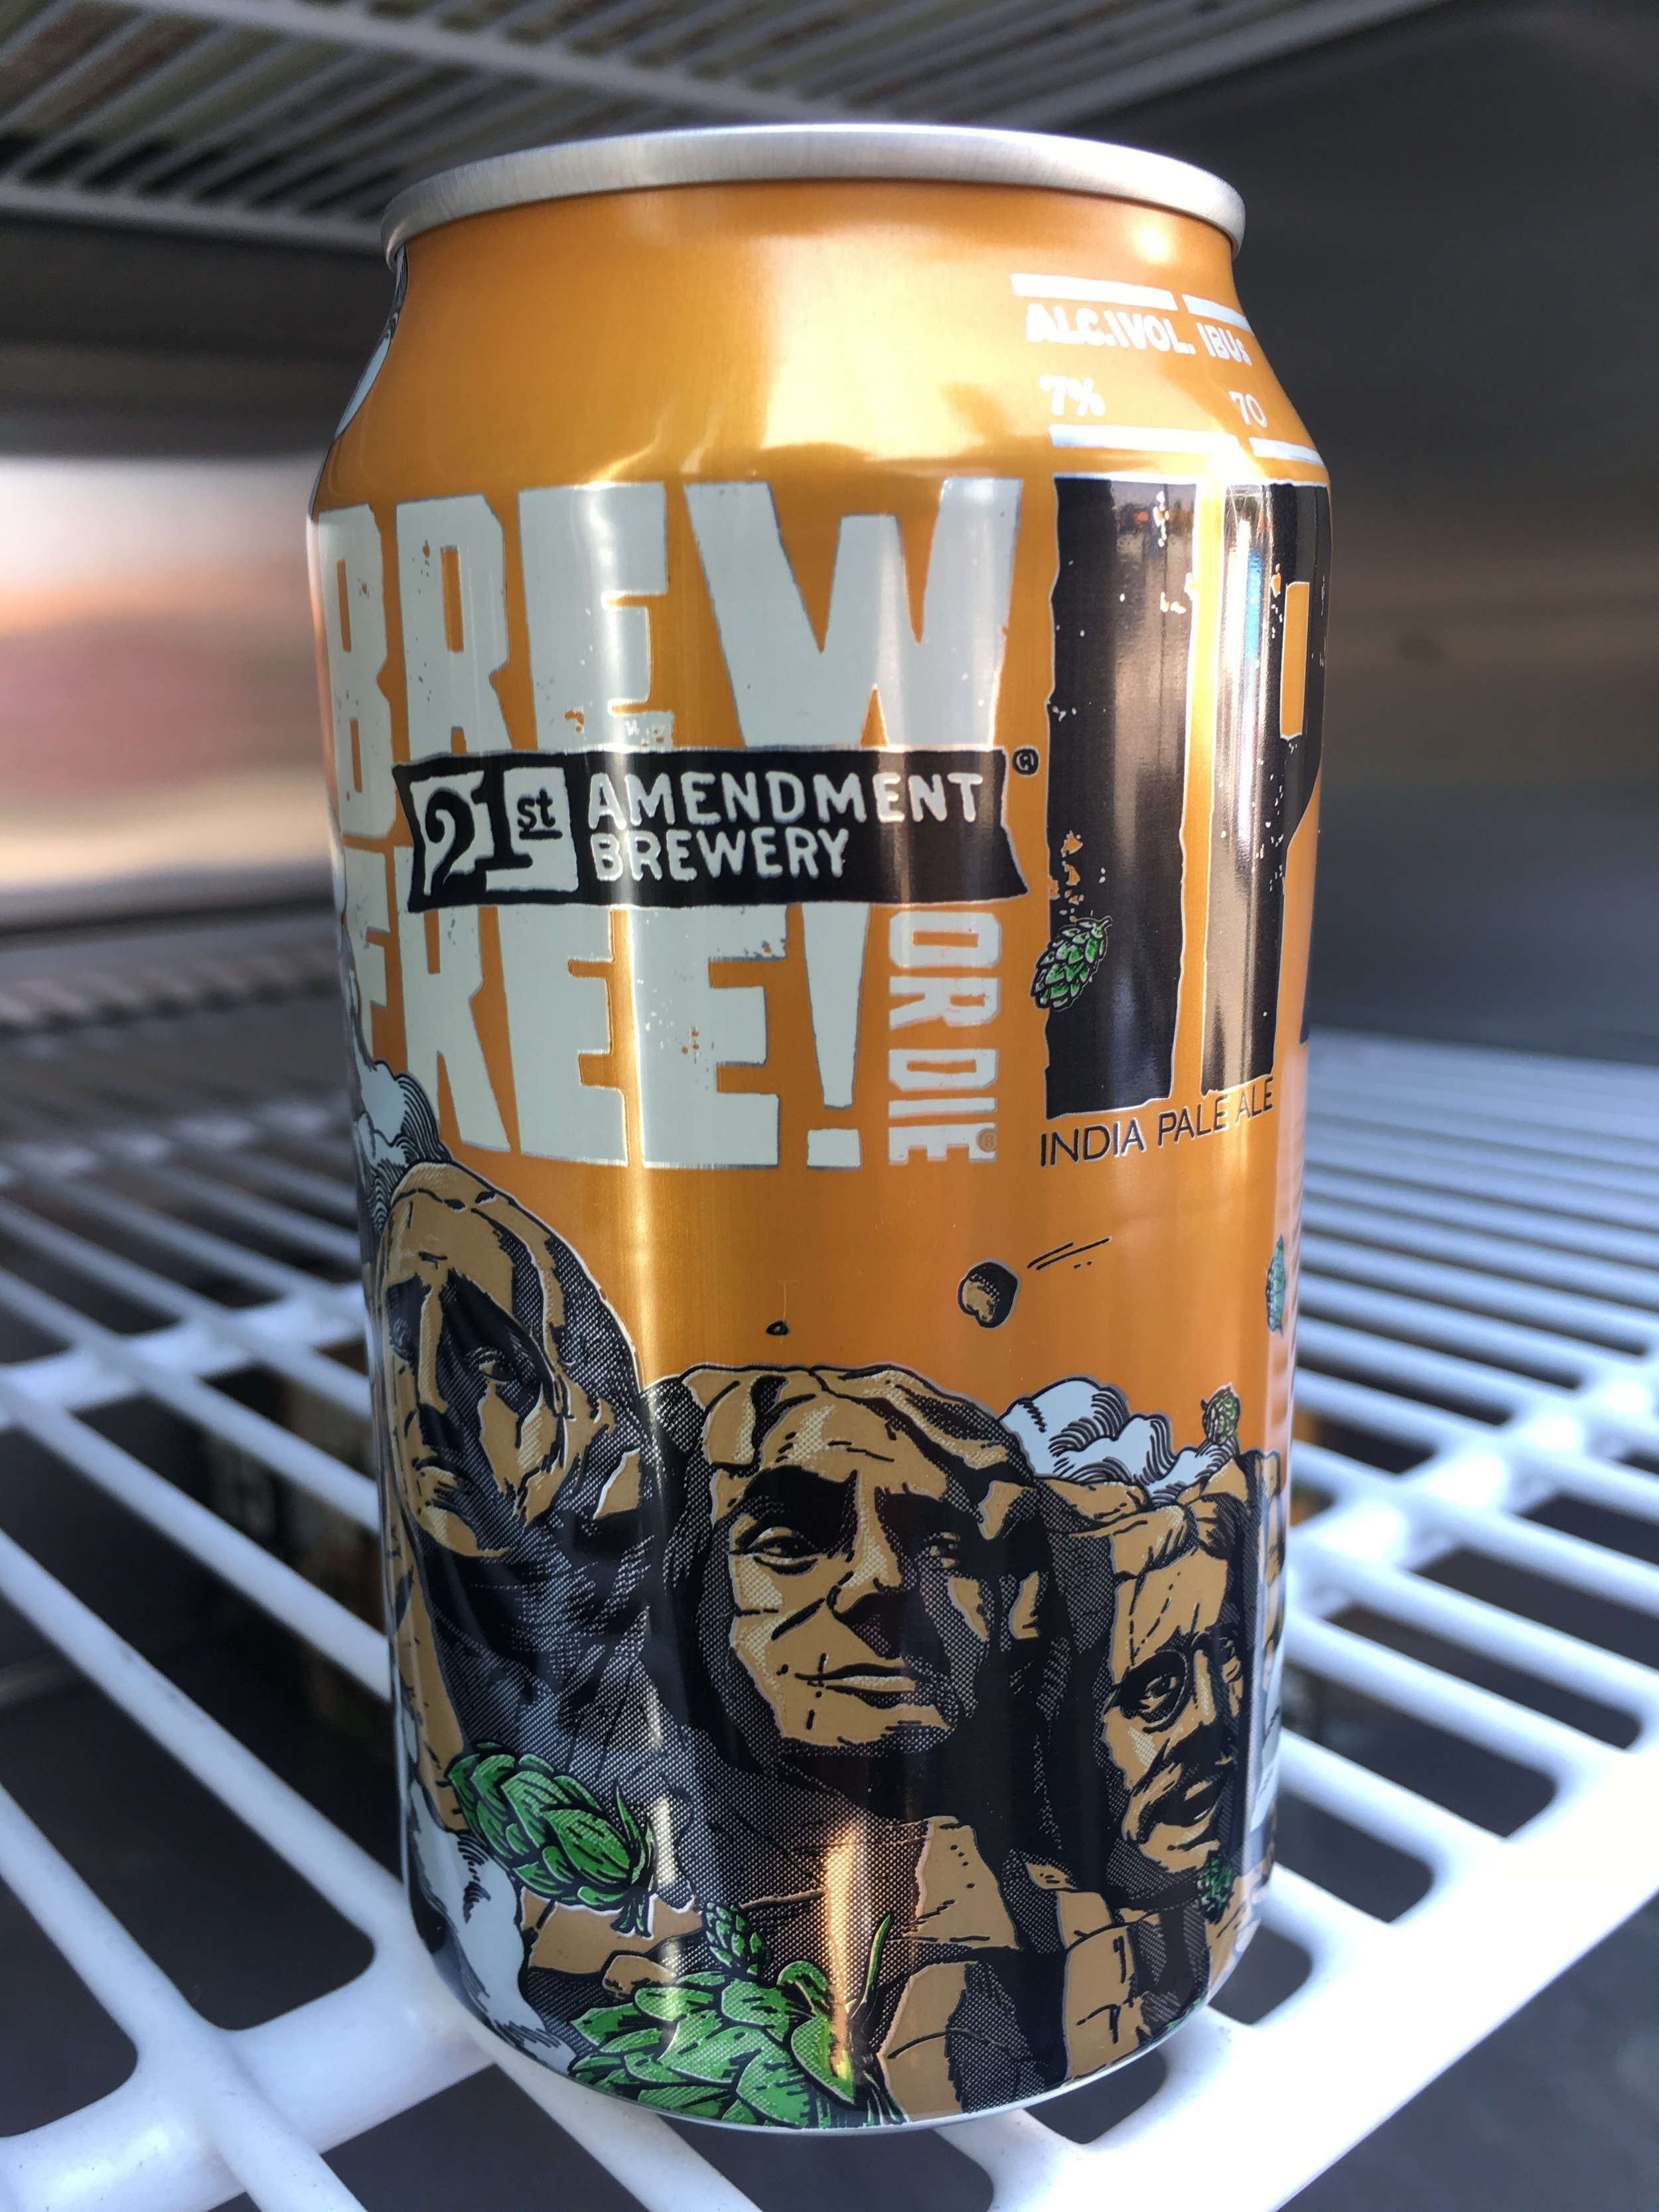 21st Amendment Brewery - Brew Free! Or Die IPA